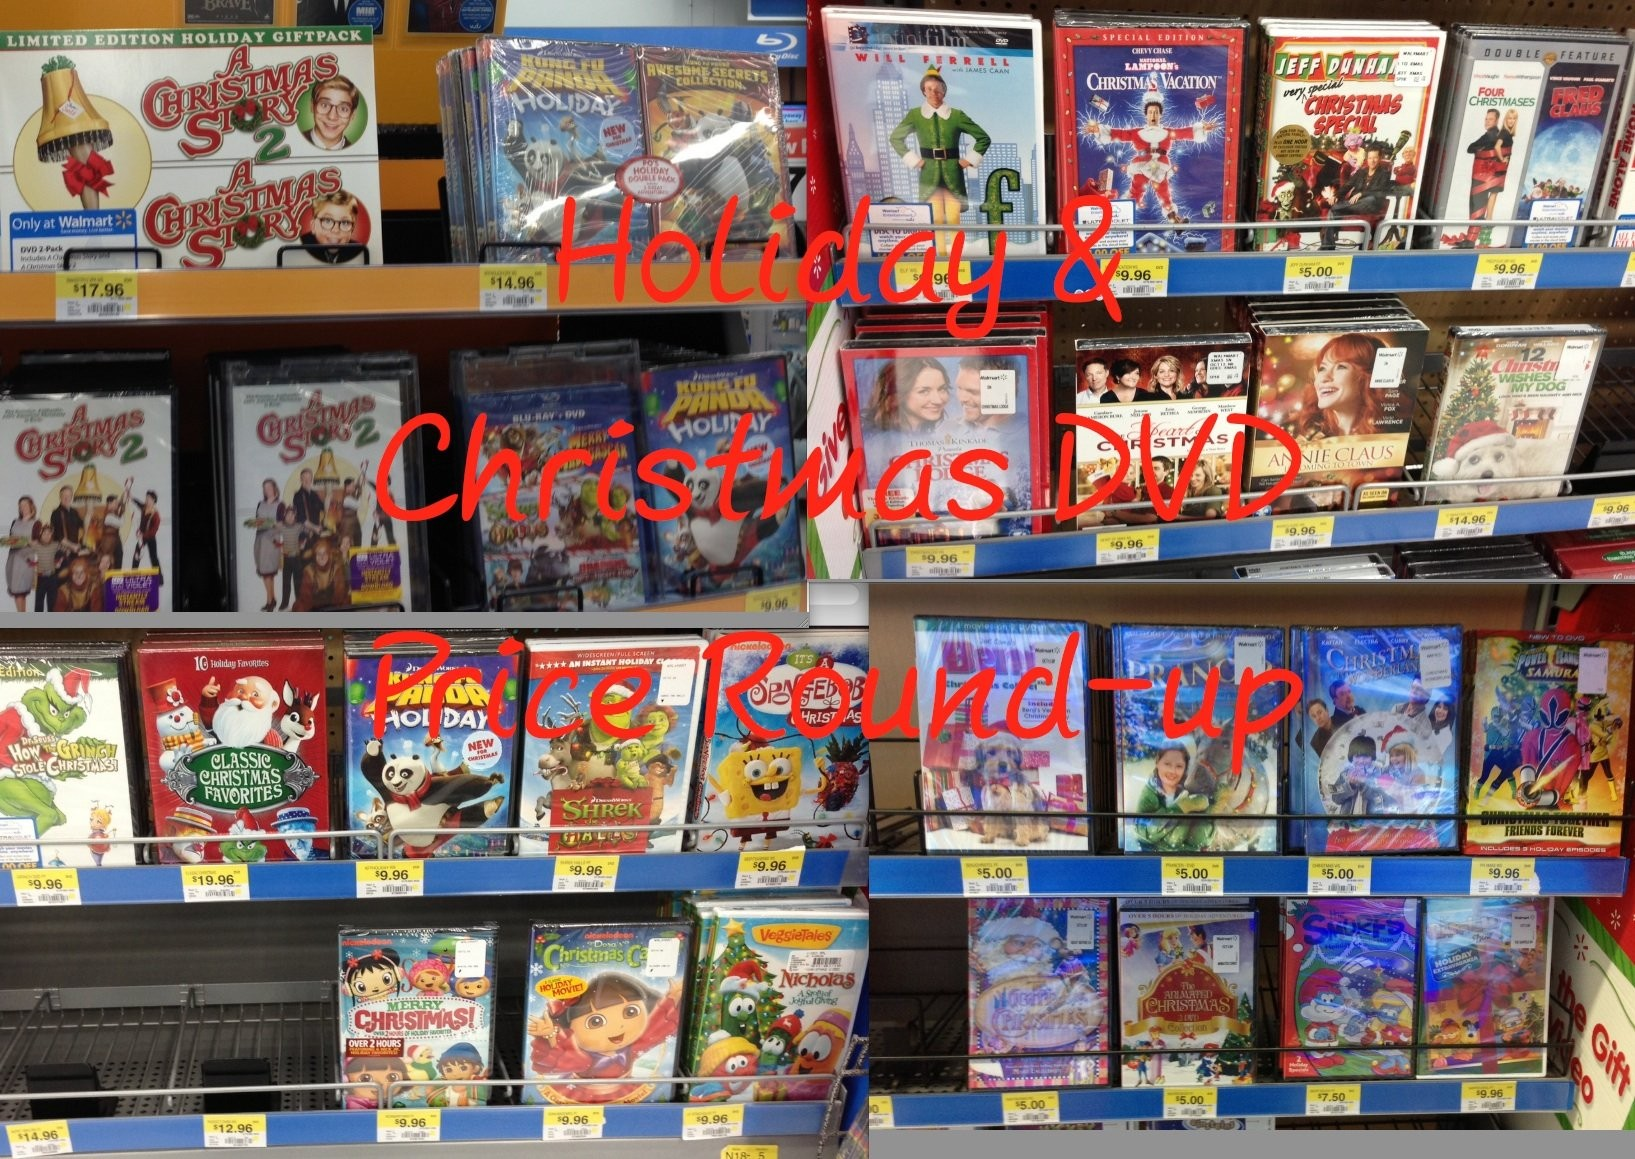 Christmas Holiday Movie Dvd Title Price Round Up Bargain Mom Al Com